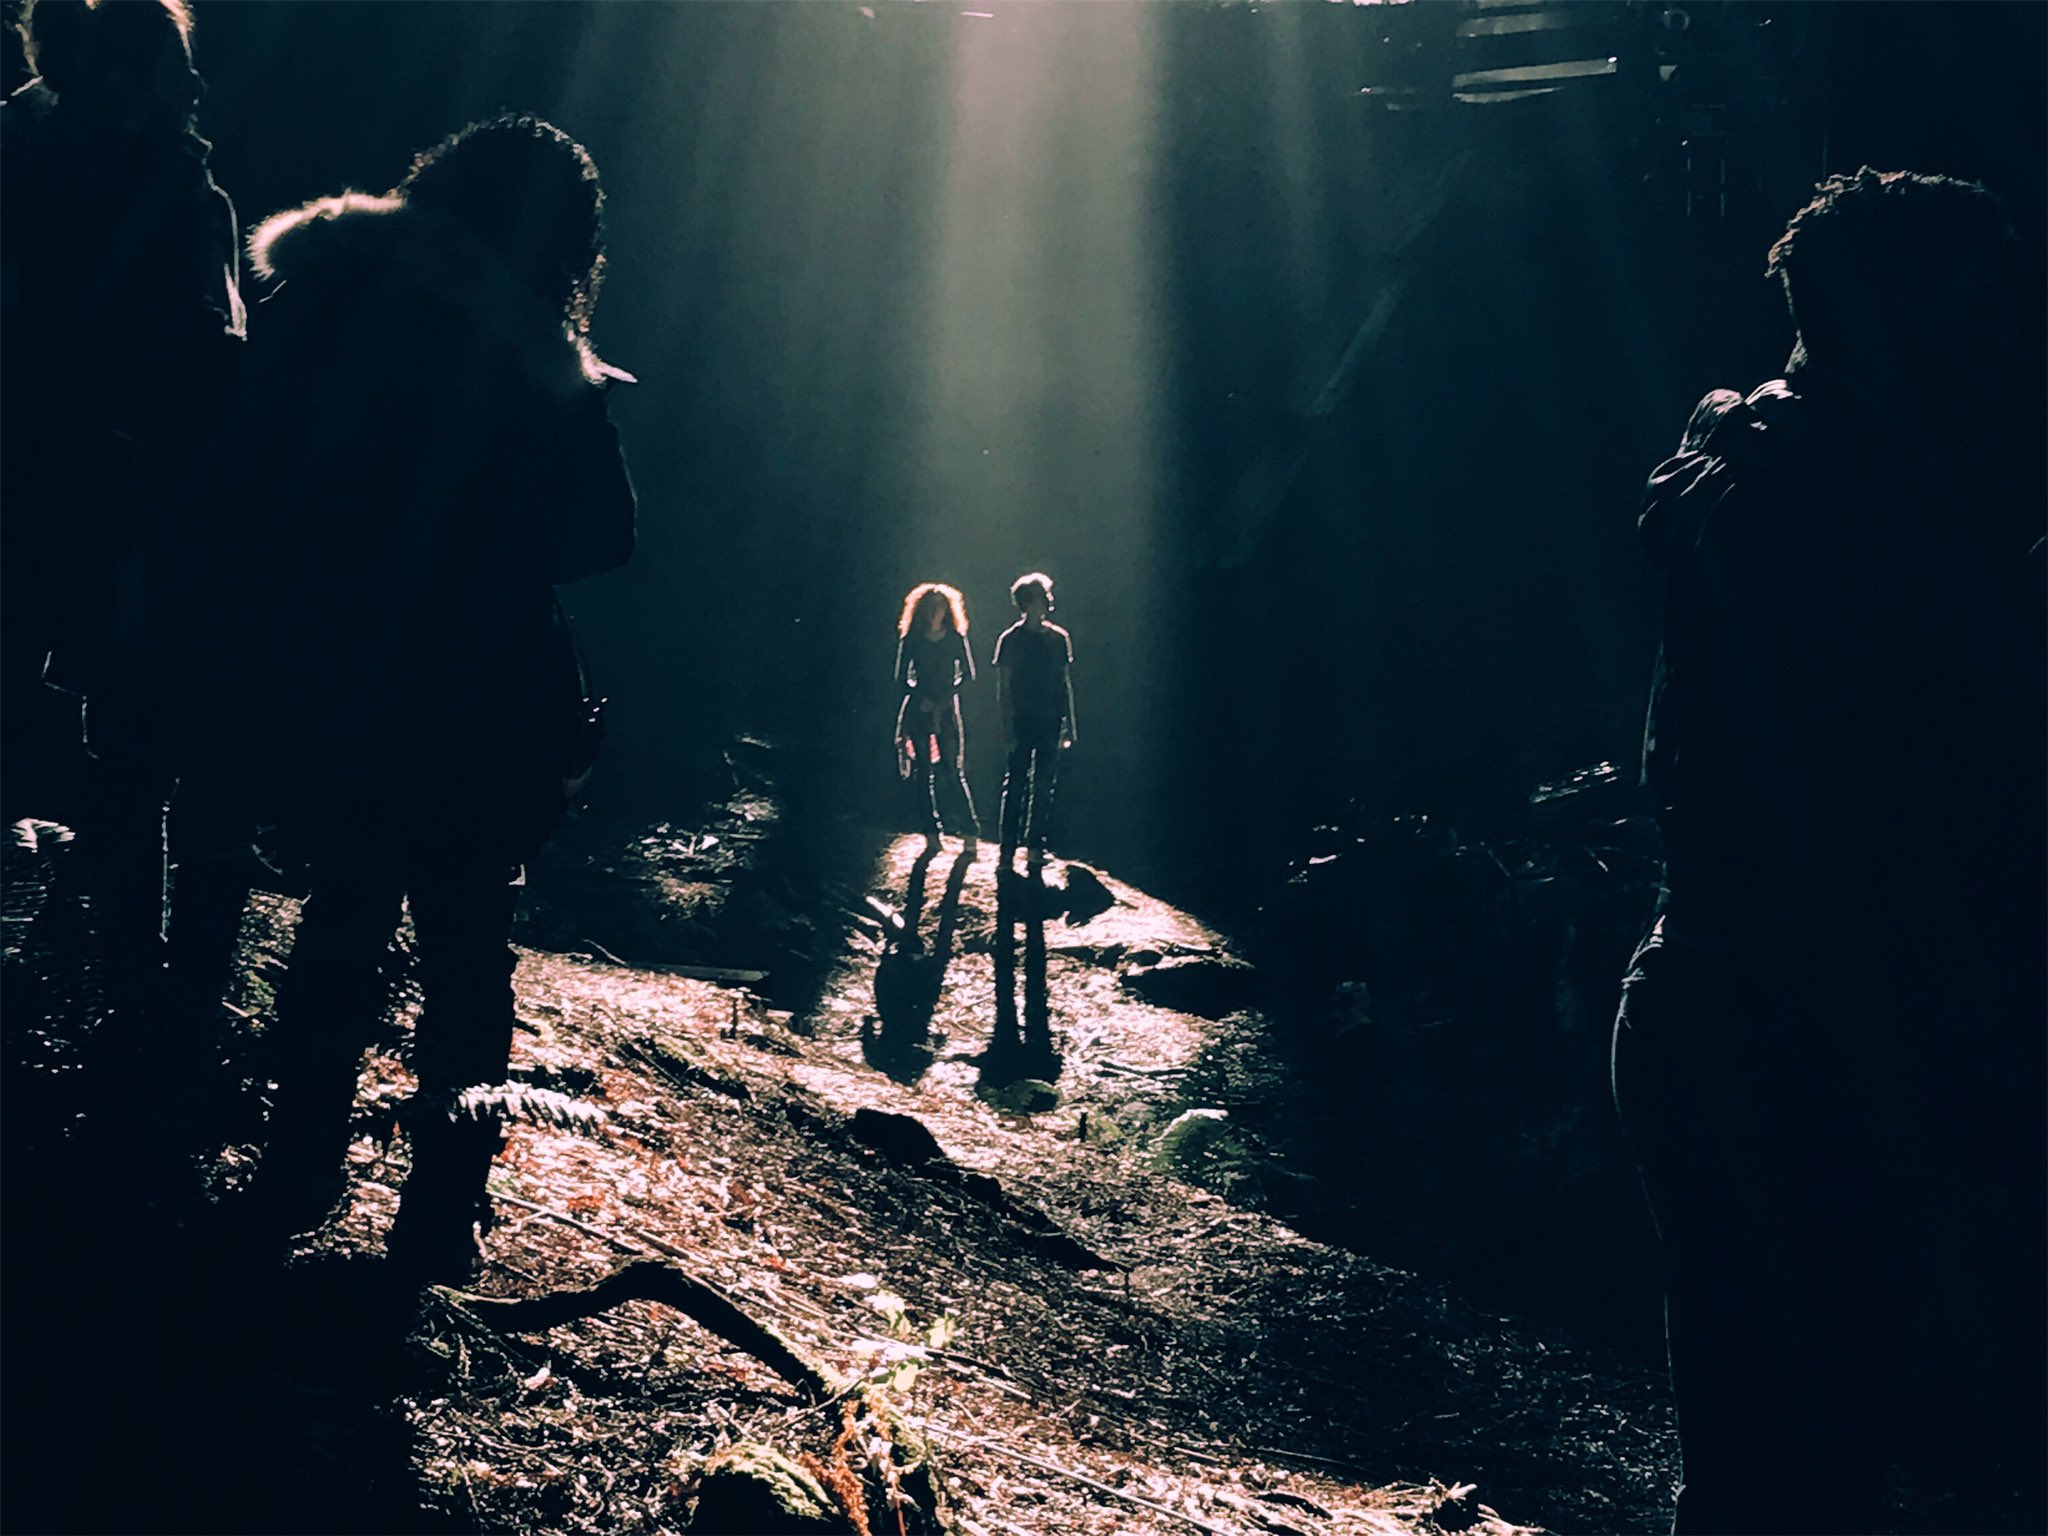 A Wrinkle in Time Movie Images Released as Filming Wraps 2048x1536